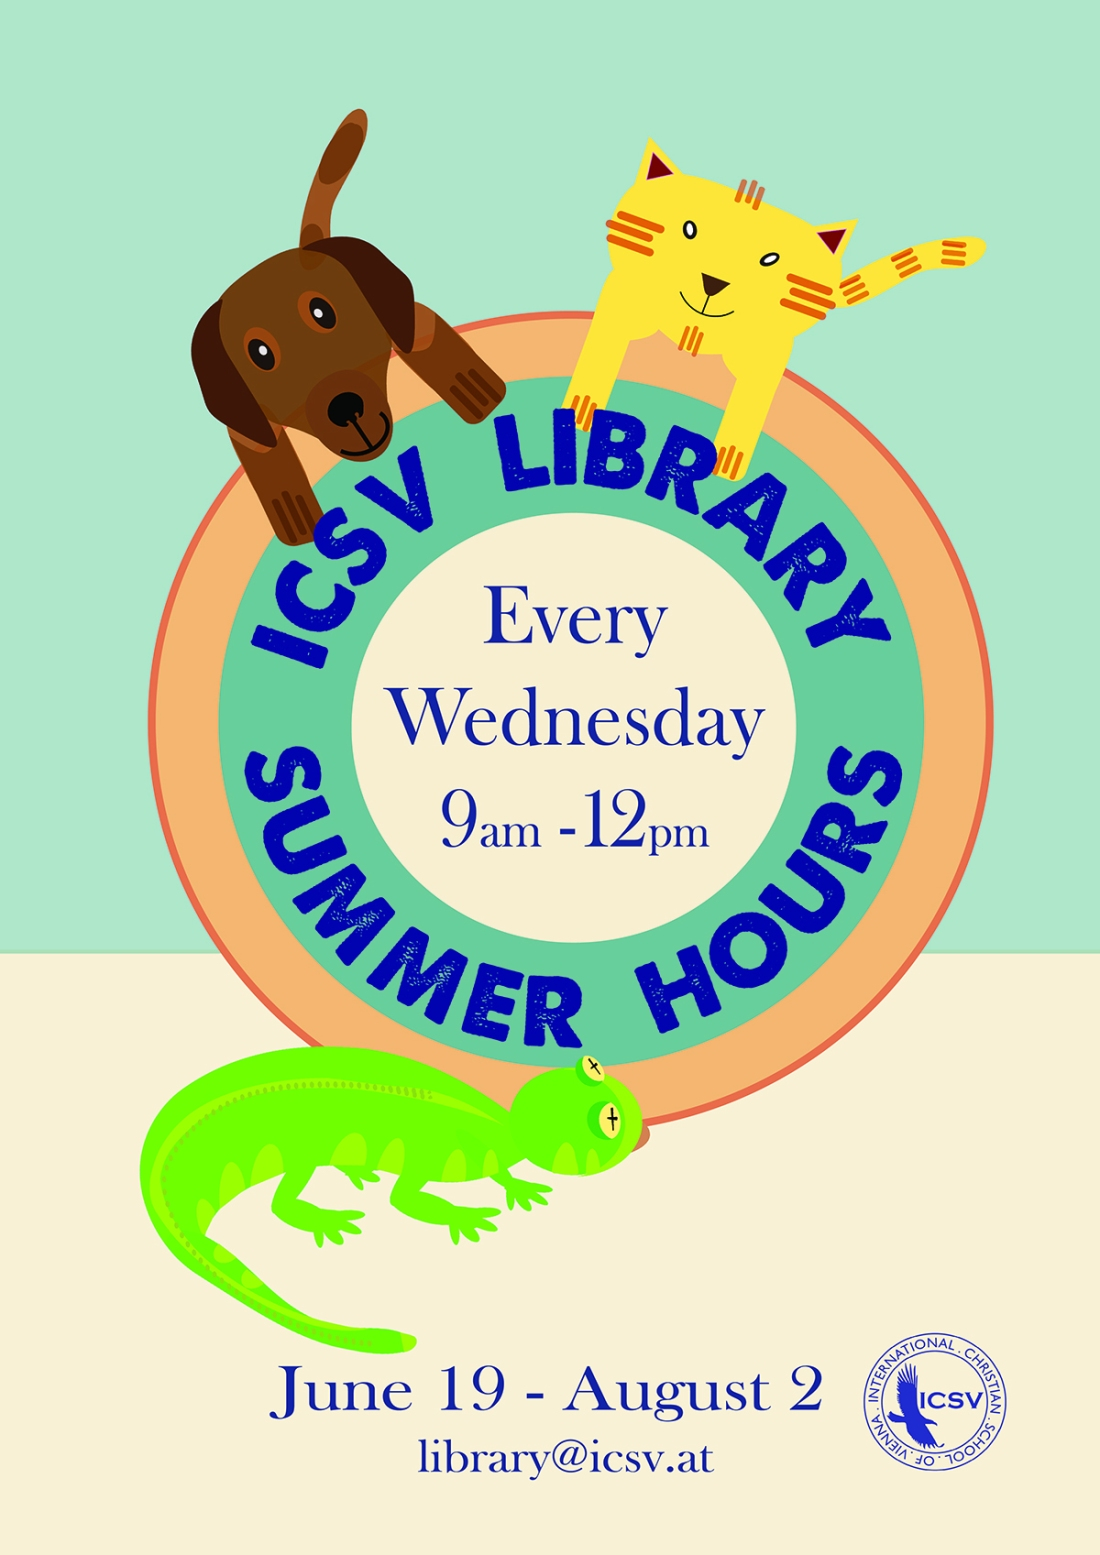 ICSV Library's 2013 Summer Hours Poster